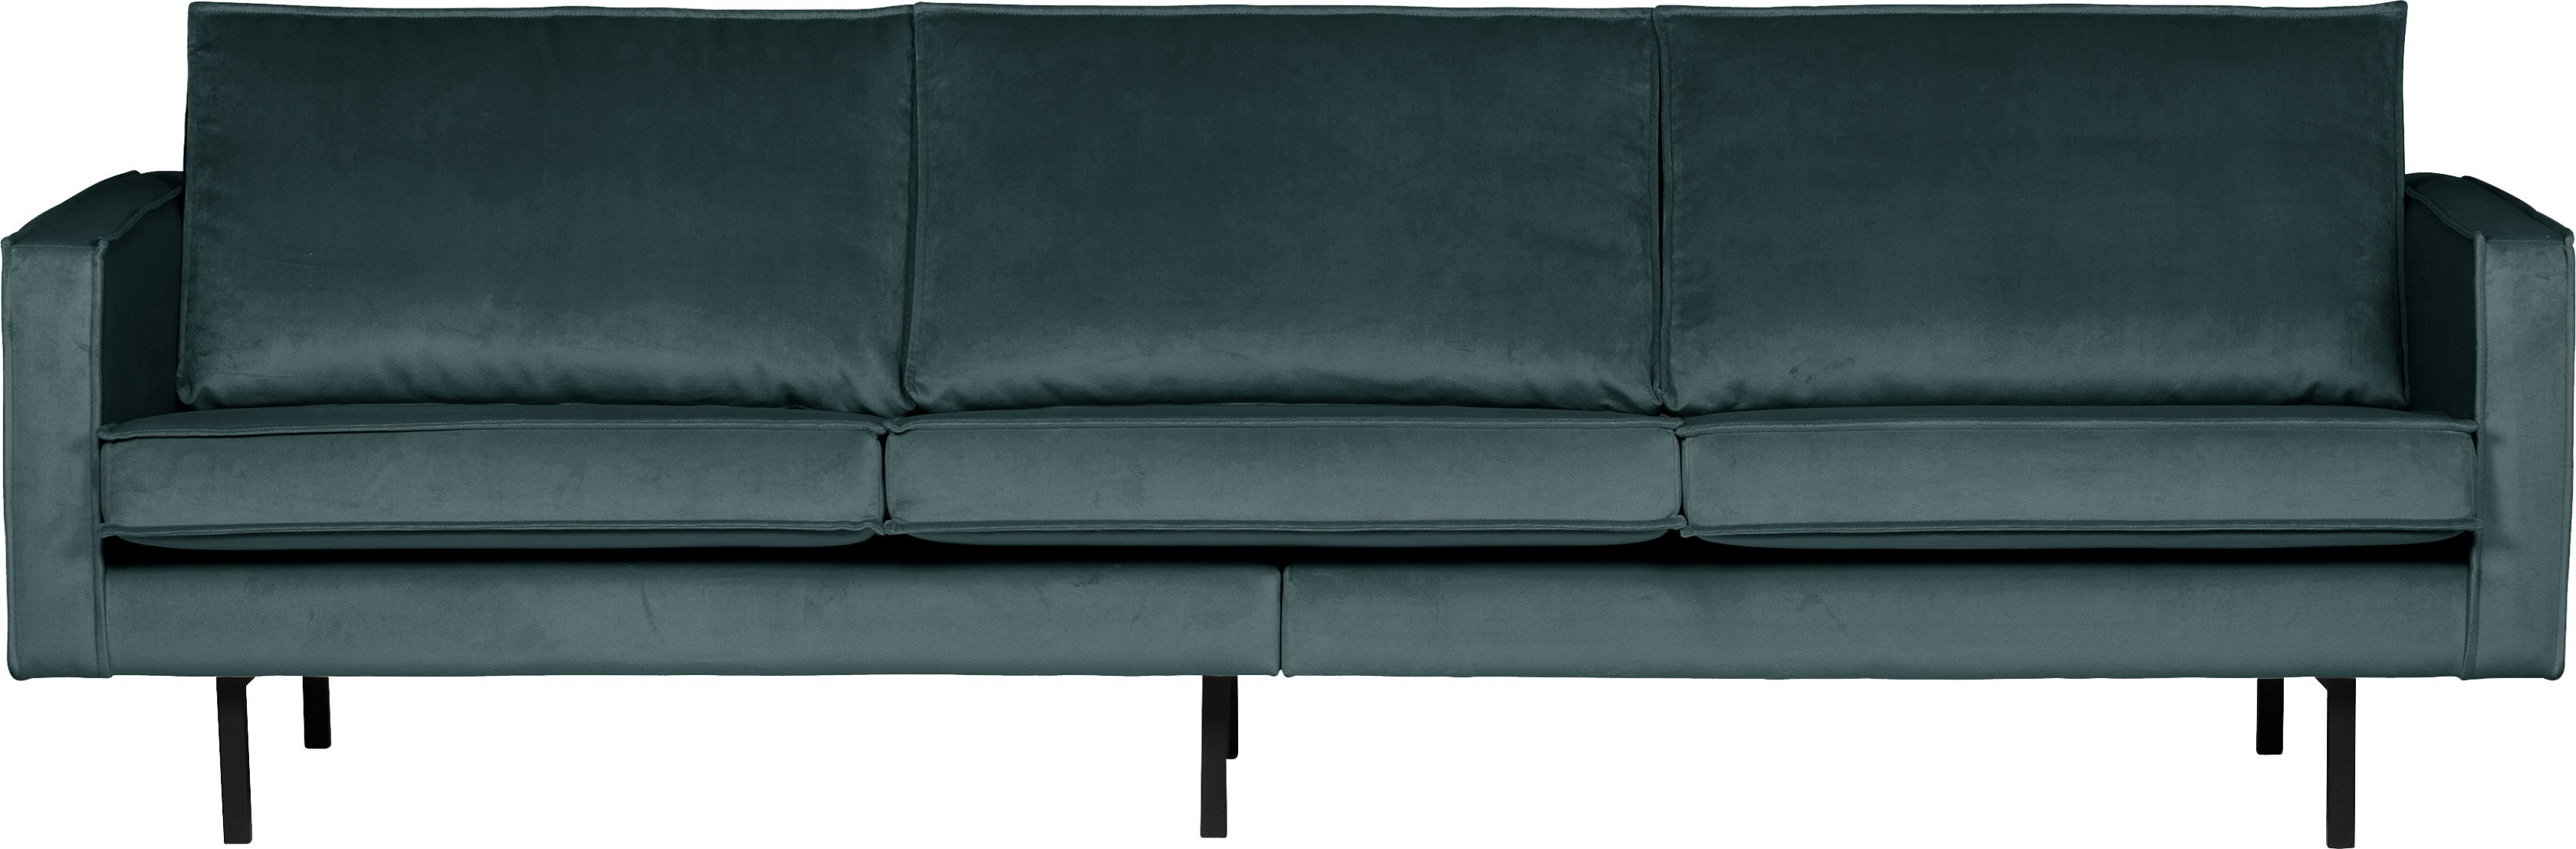 Rodeo Sofa Dark Turquoise, Be Pure